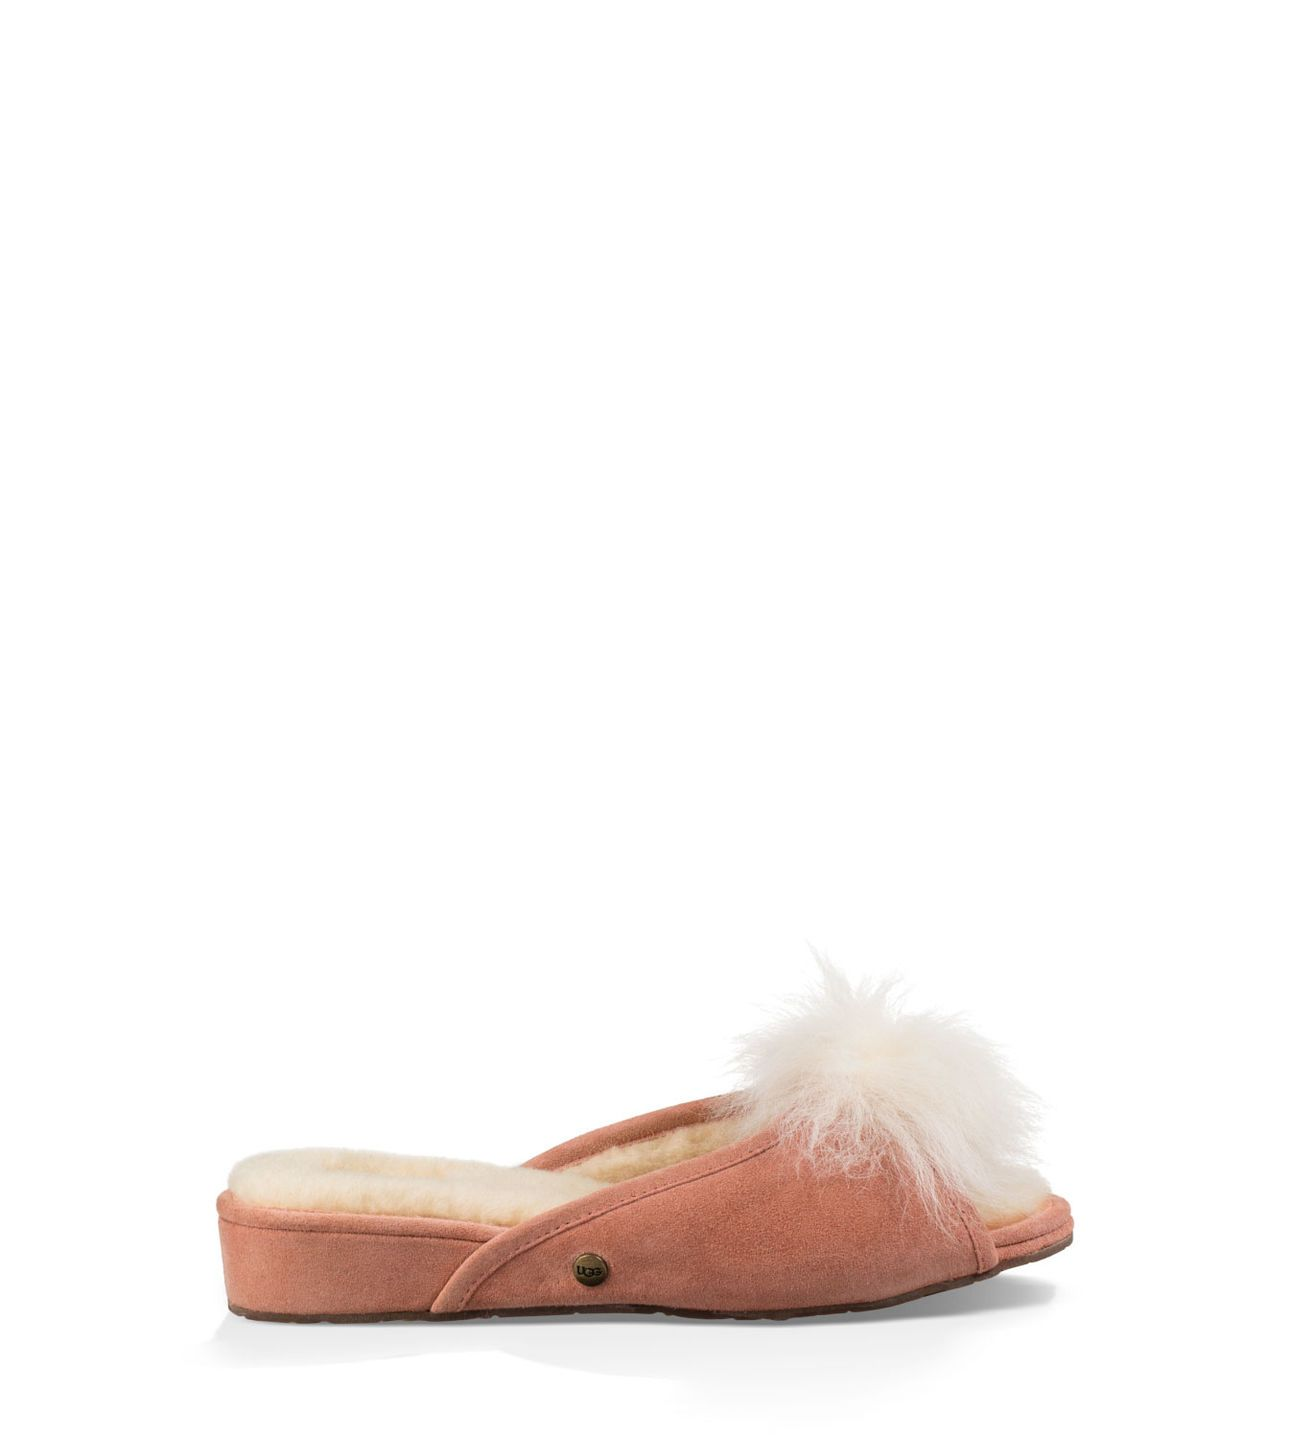 Shop Our Collection Of Women S Wool Slippers Including The Yvett Free Shipping Free Returns On Authentic Ugg Wool Slipp Ugg Slippers Women Uggs